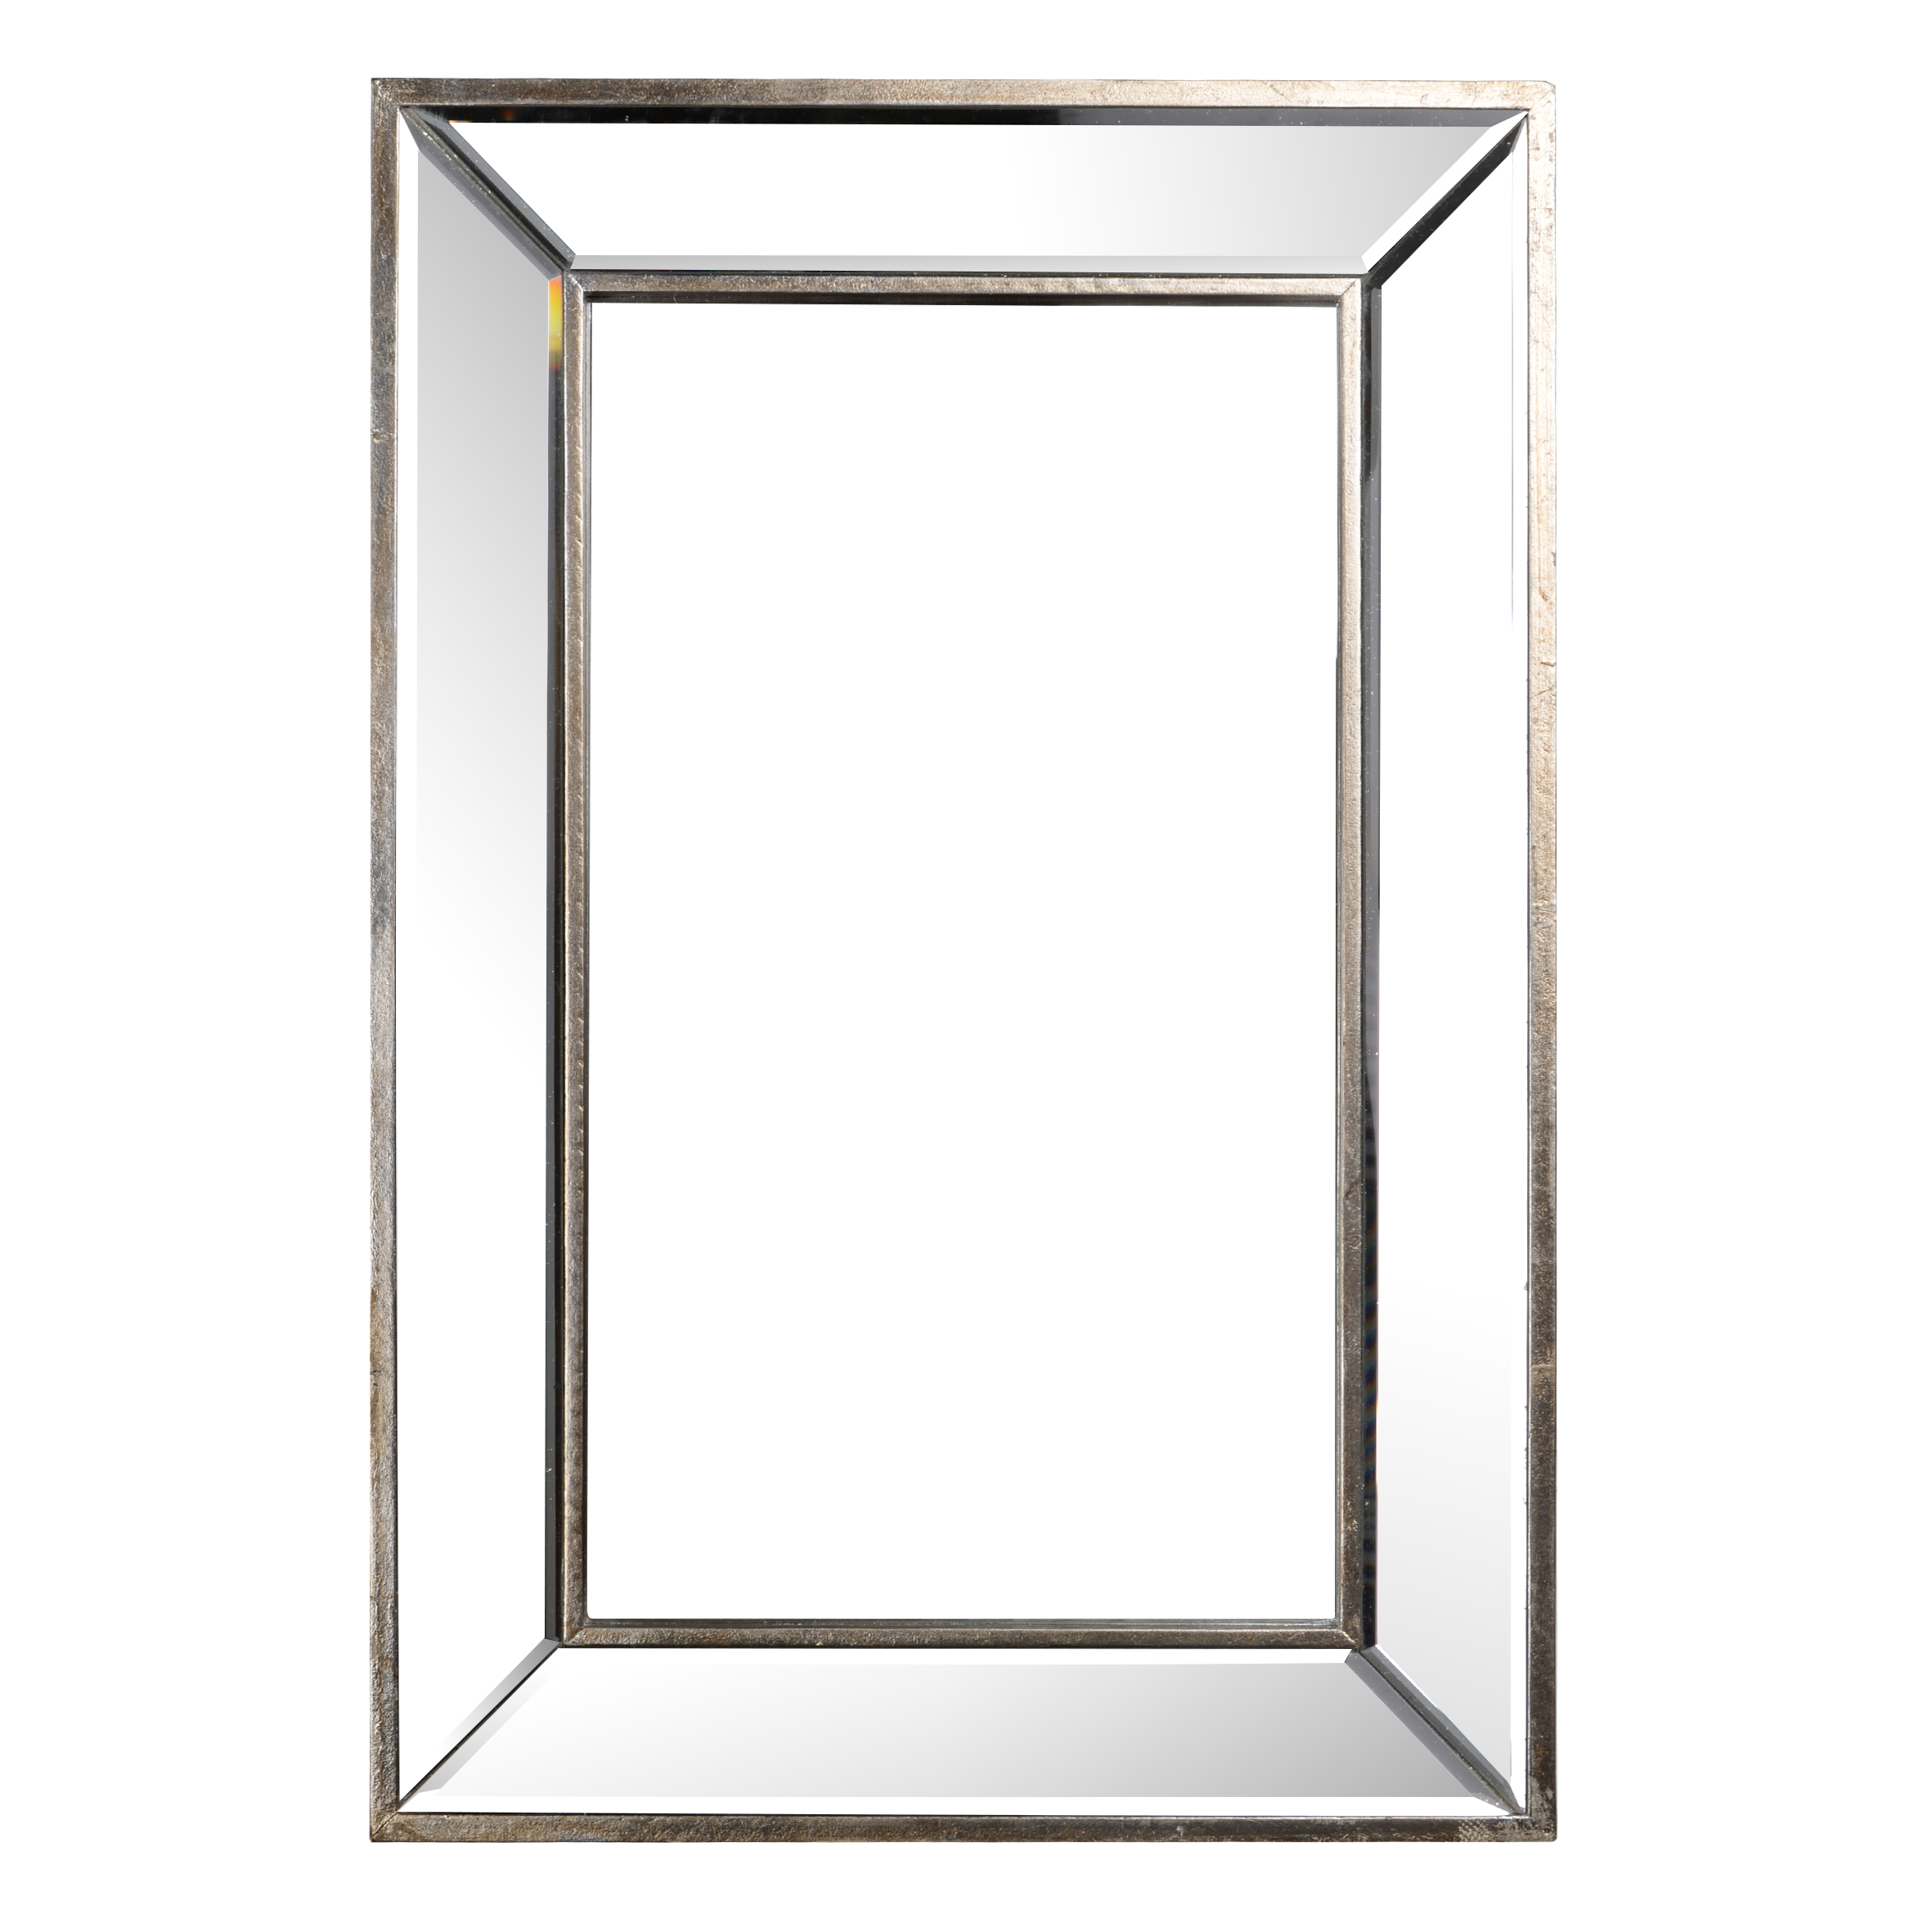 A&B Home Decorative Wall Mirror by A&B Home